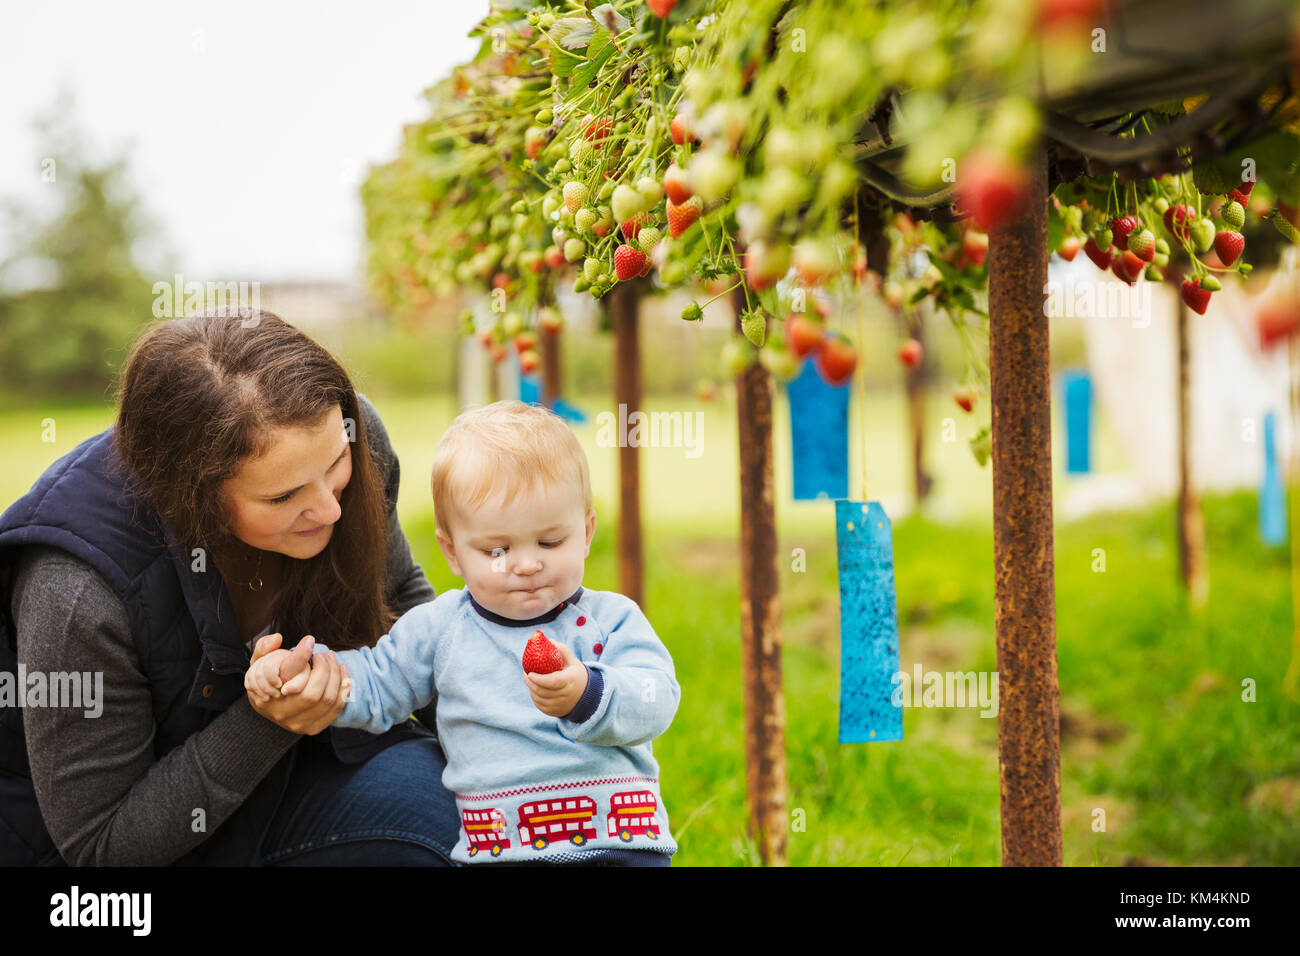 Fruit picking in a poly tunnel, PYO. A mother and baby boy picking strawberries from plants grown on raised platforms - Stock Image